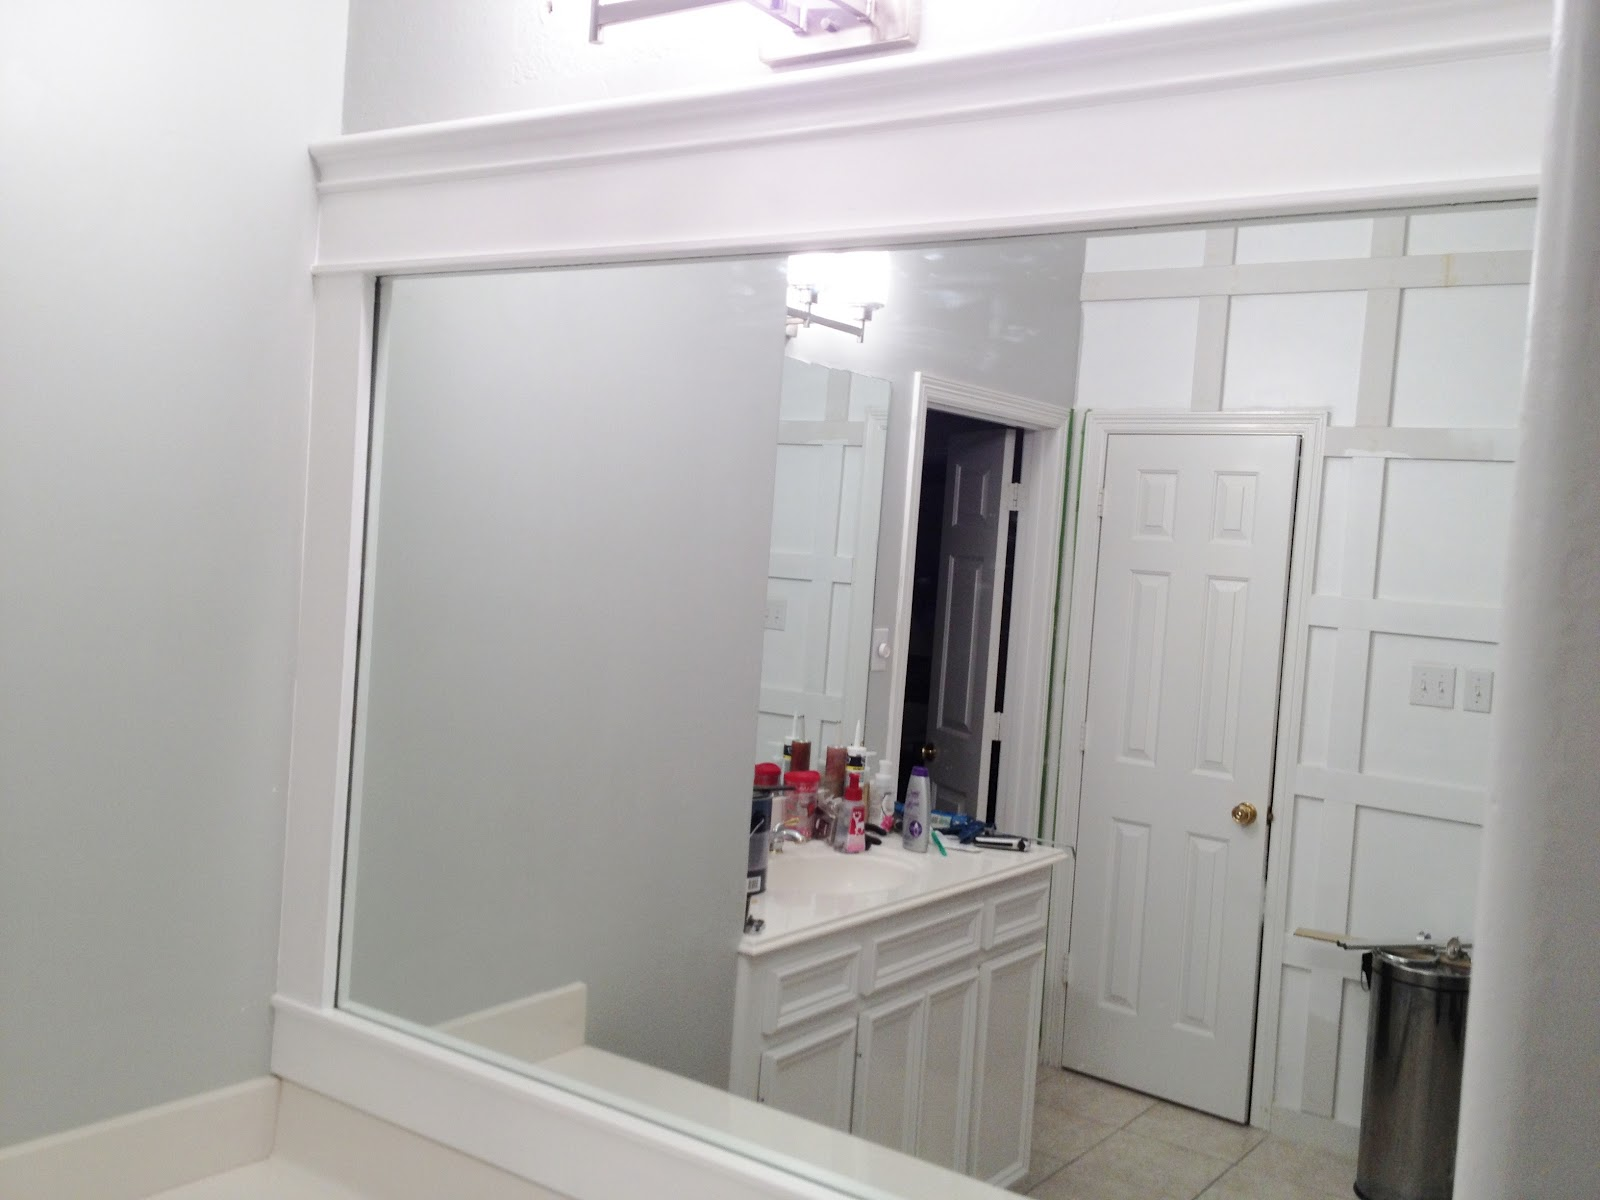 Engineering Life and Style: Framing Contractor Grade Mirrors